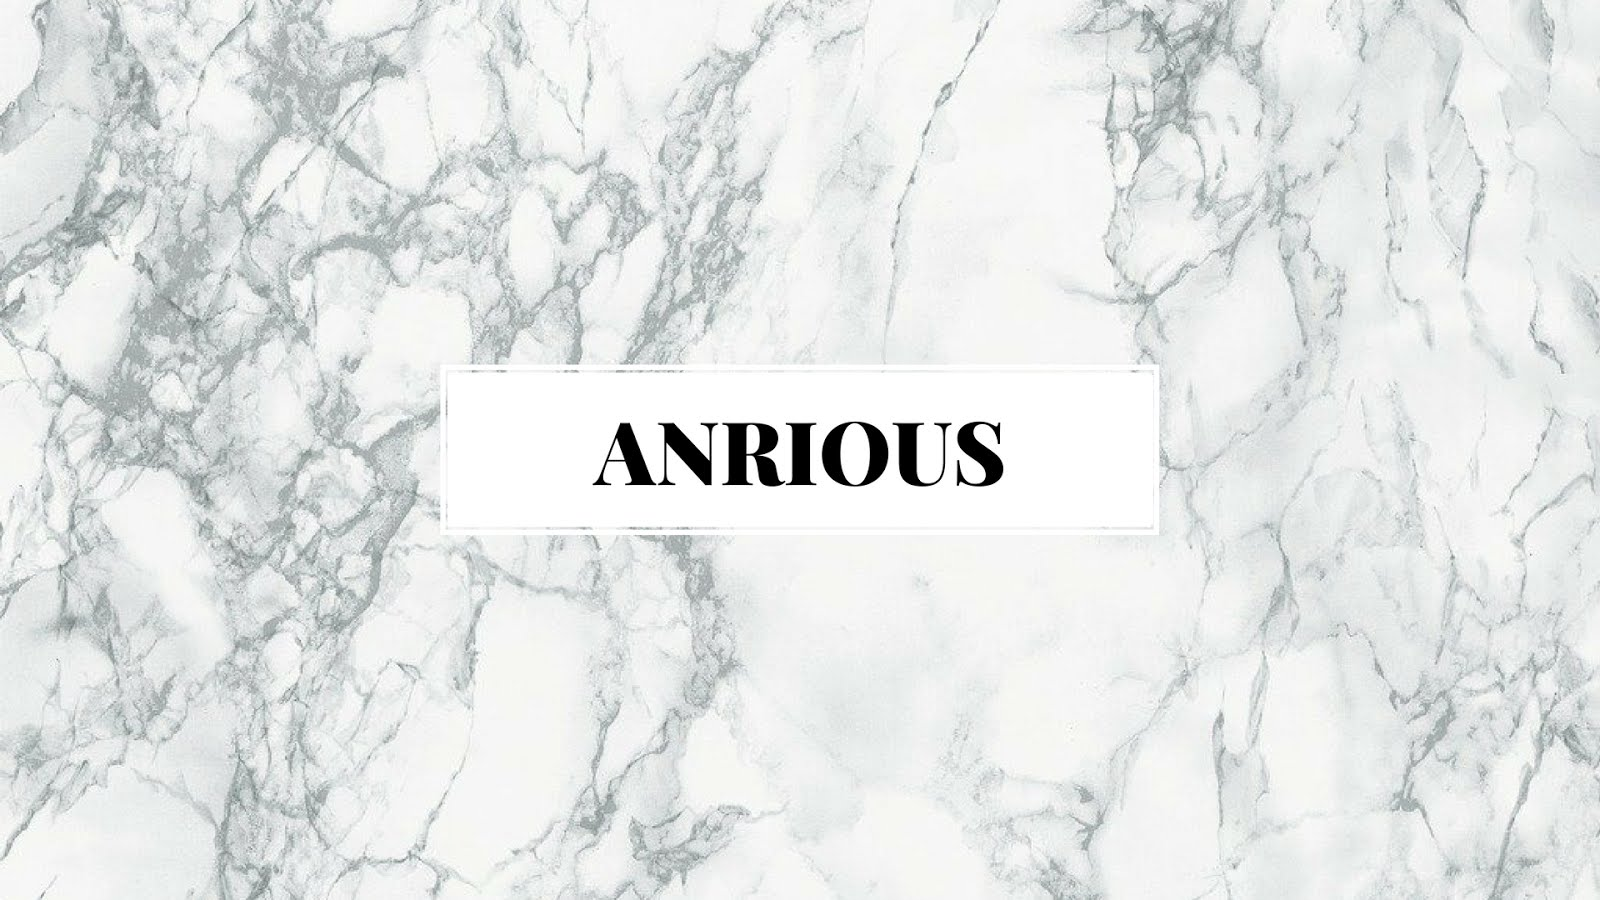 Anrious